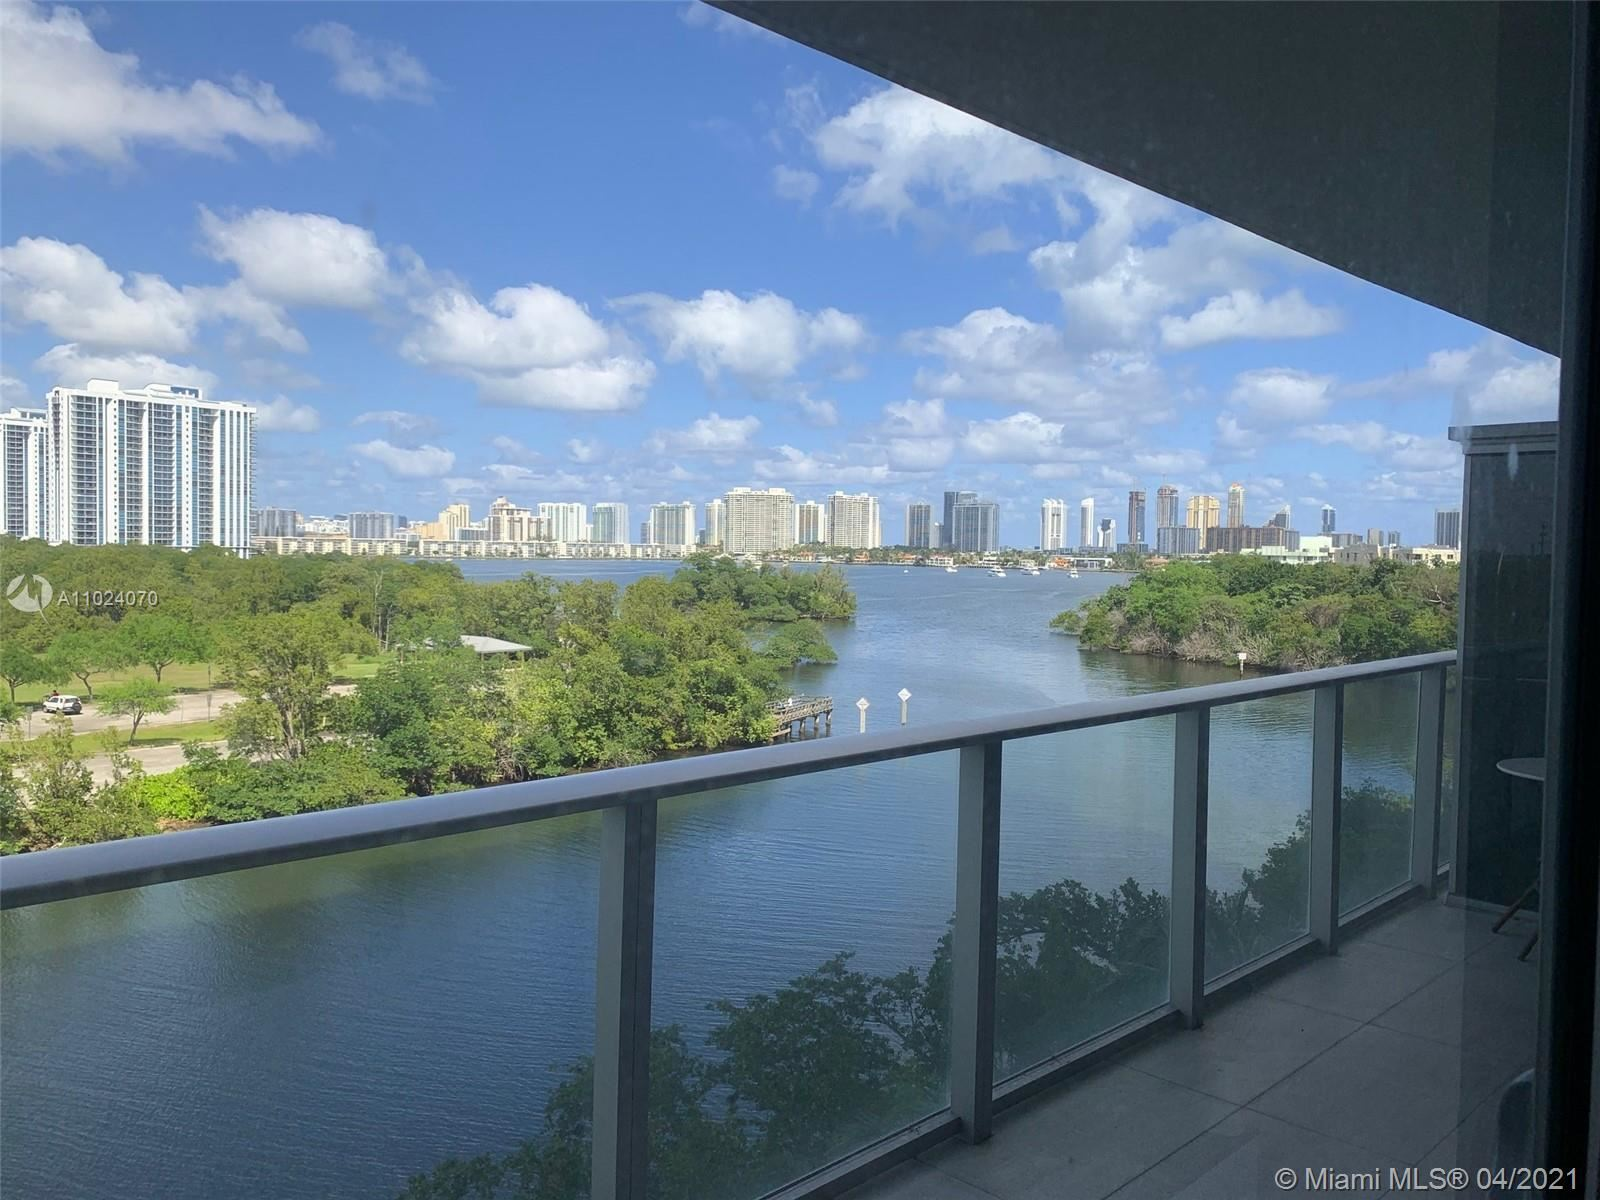 16385 Biscayne Blvd #503, North Miami Beach, FL 33160 - #: A11024070